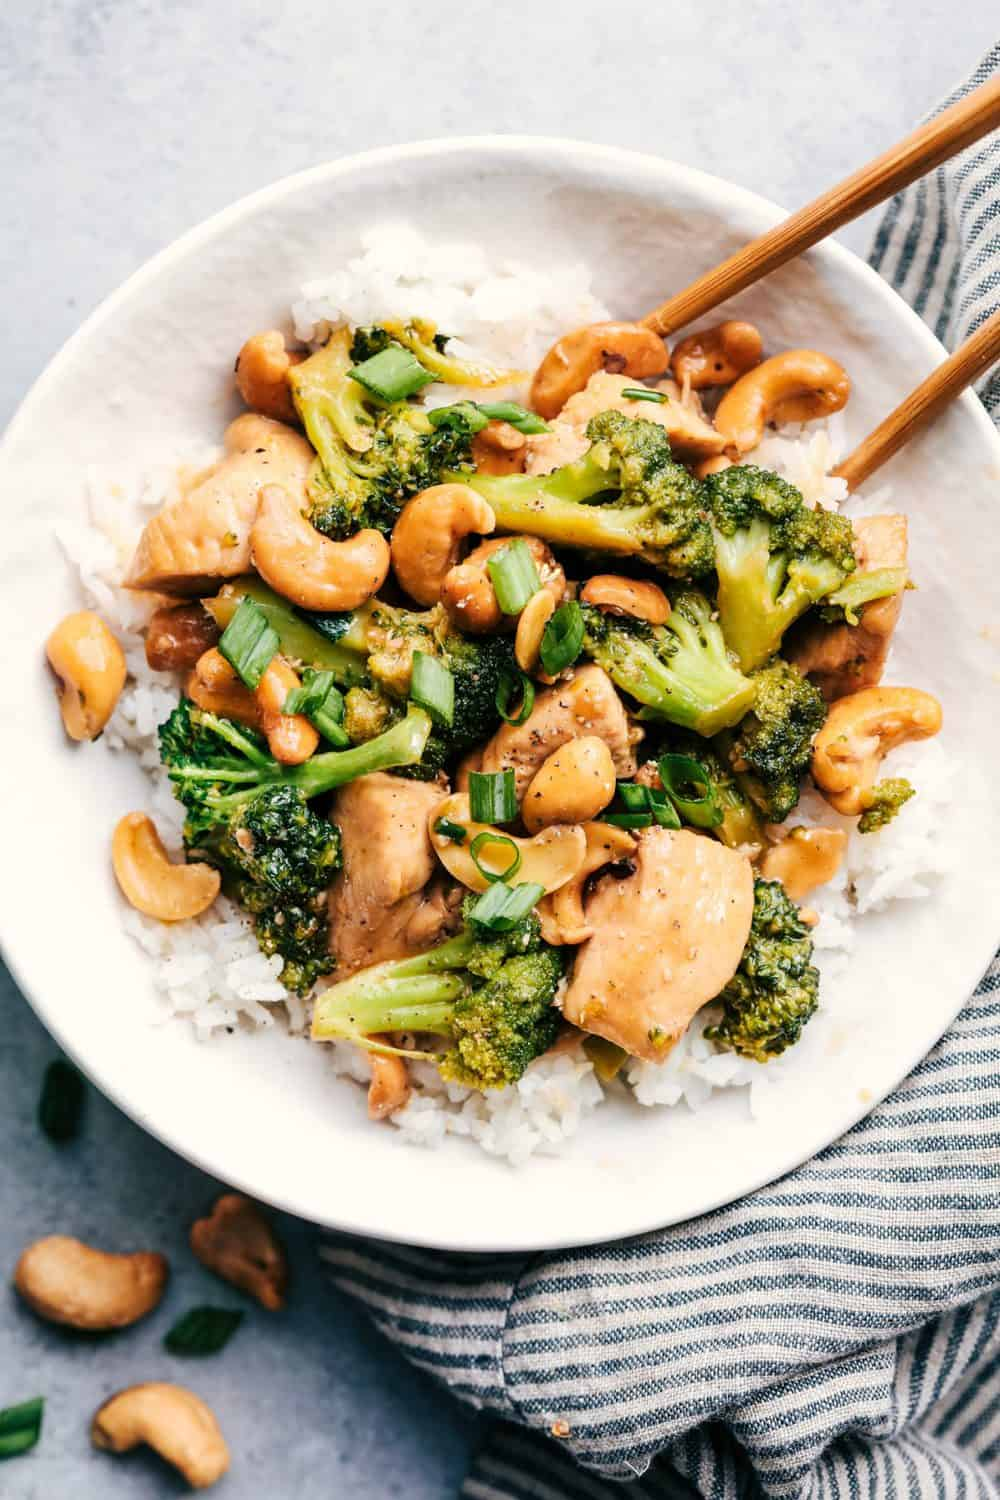 Watch Chicken and Broccoli Stir-Fry video